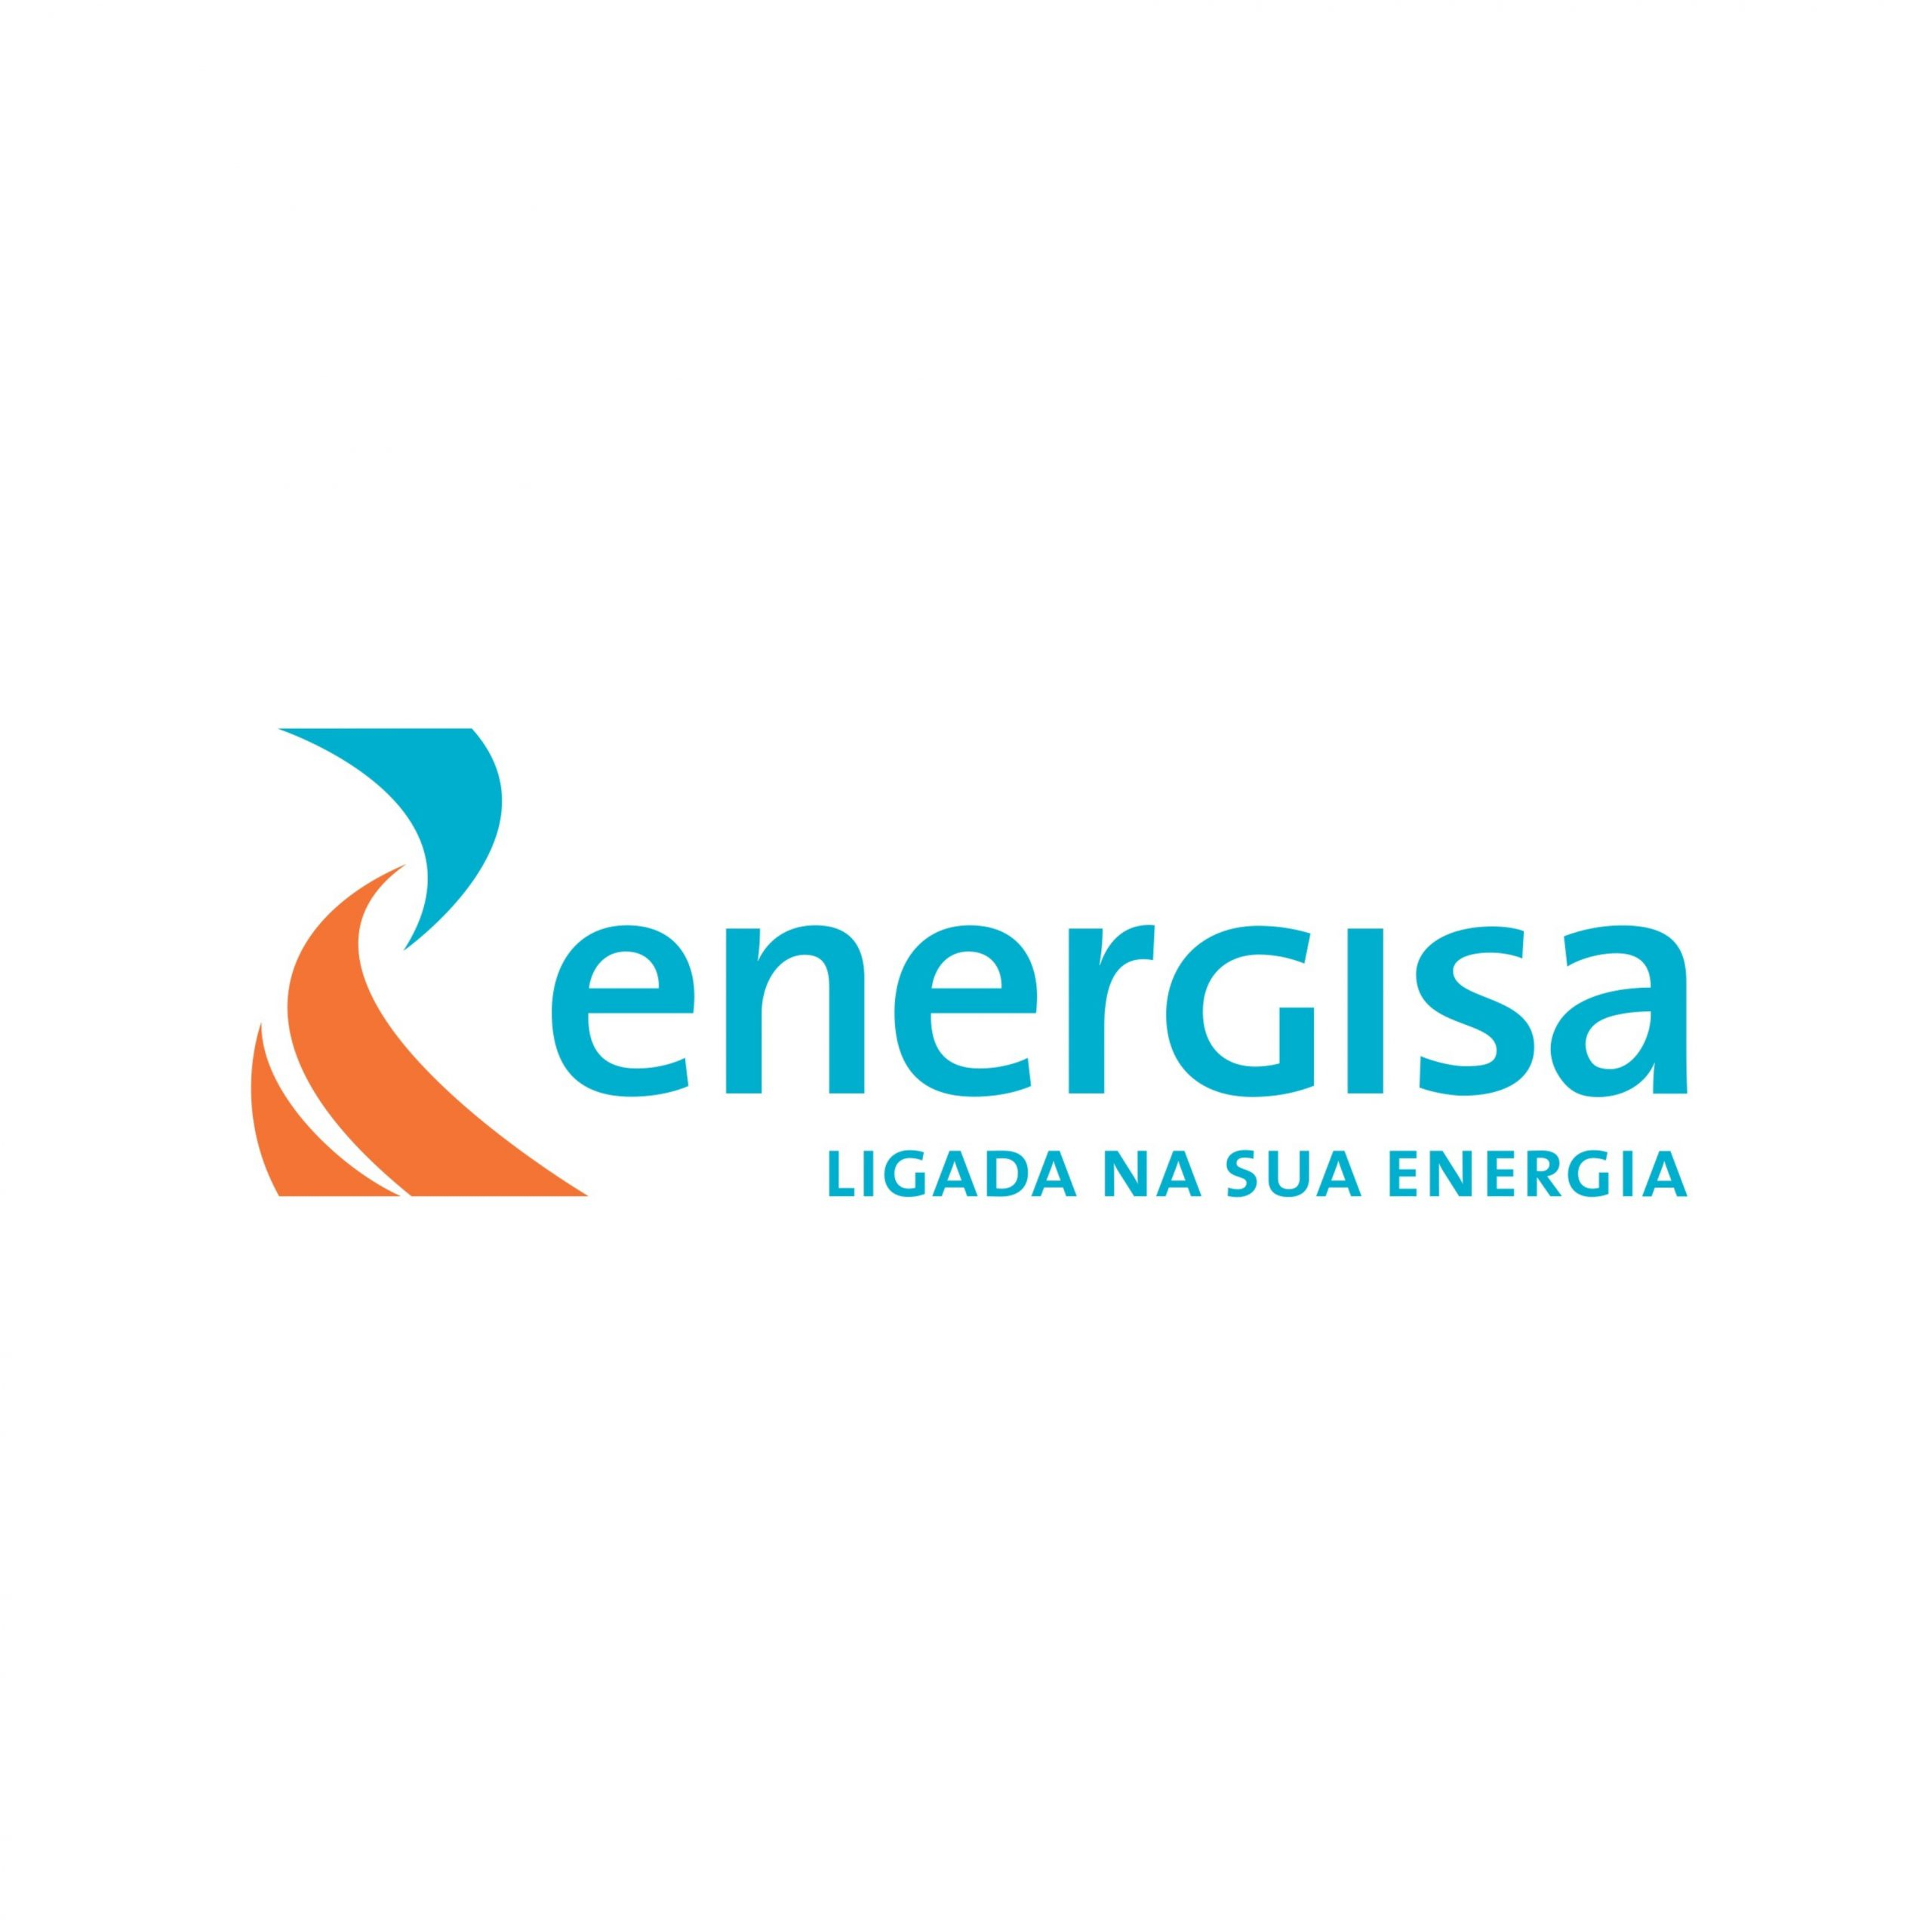 Energisa